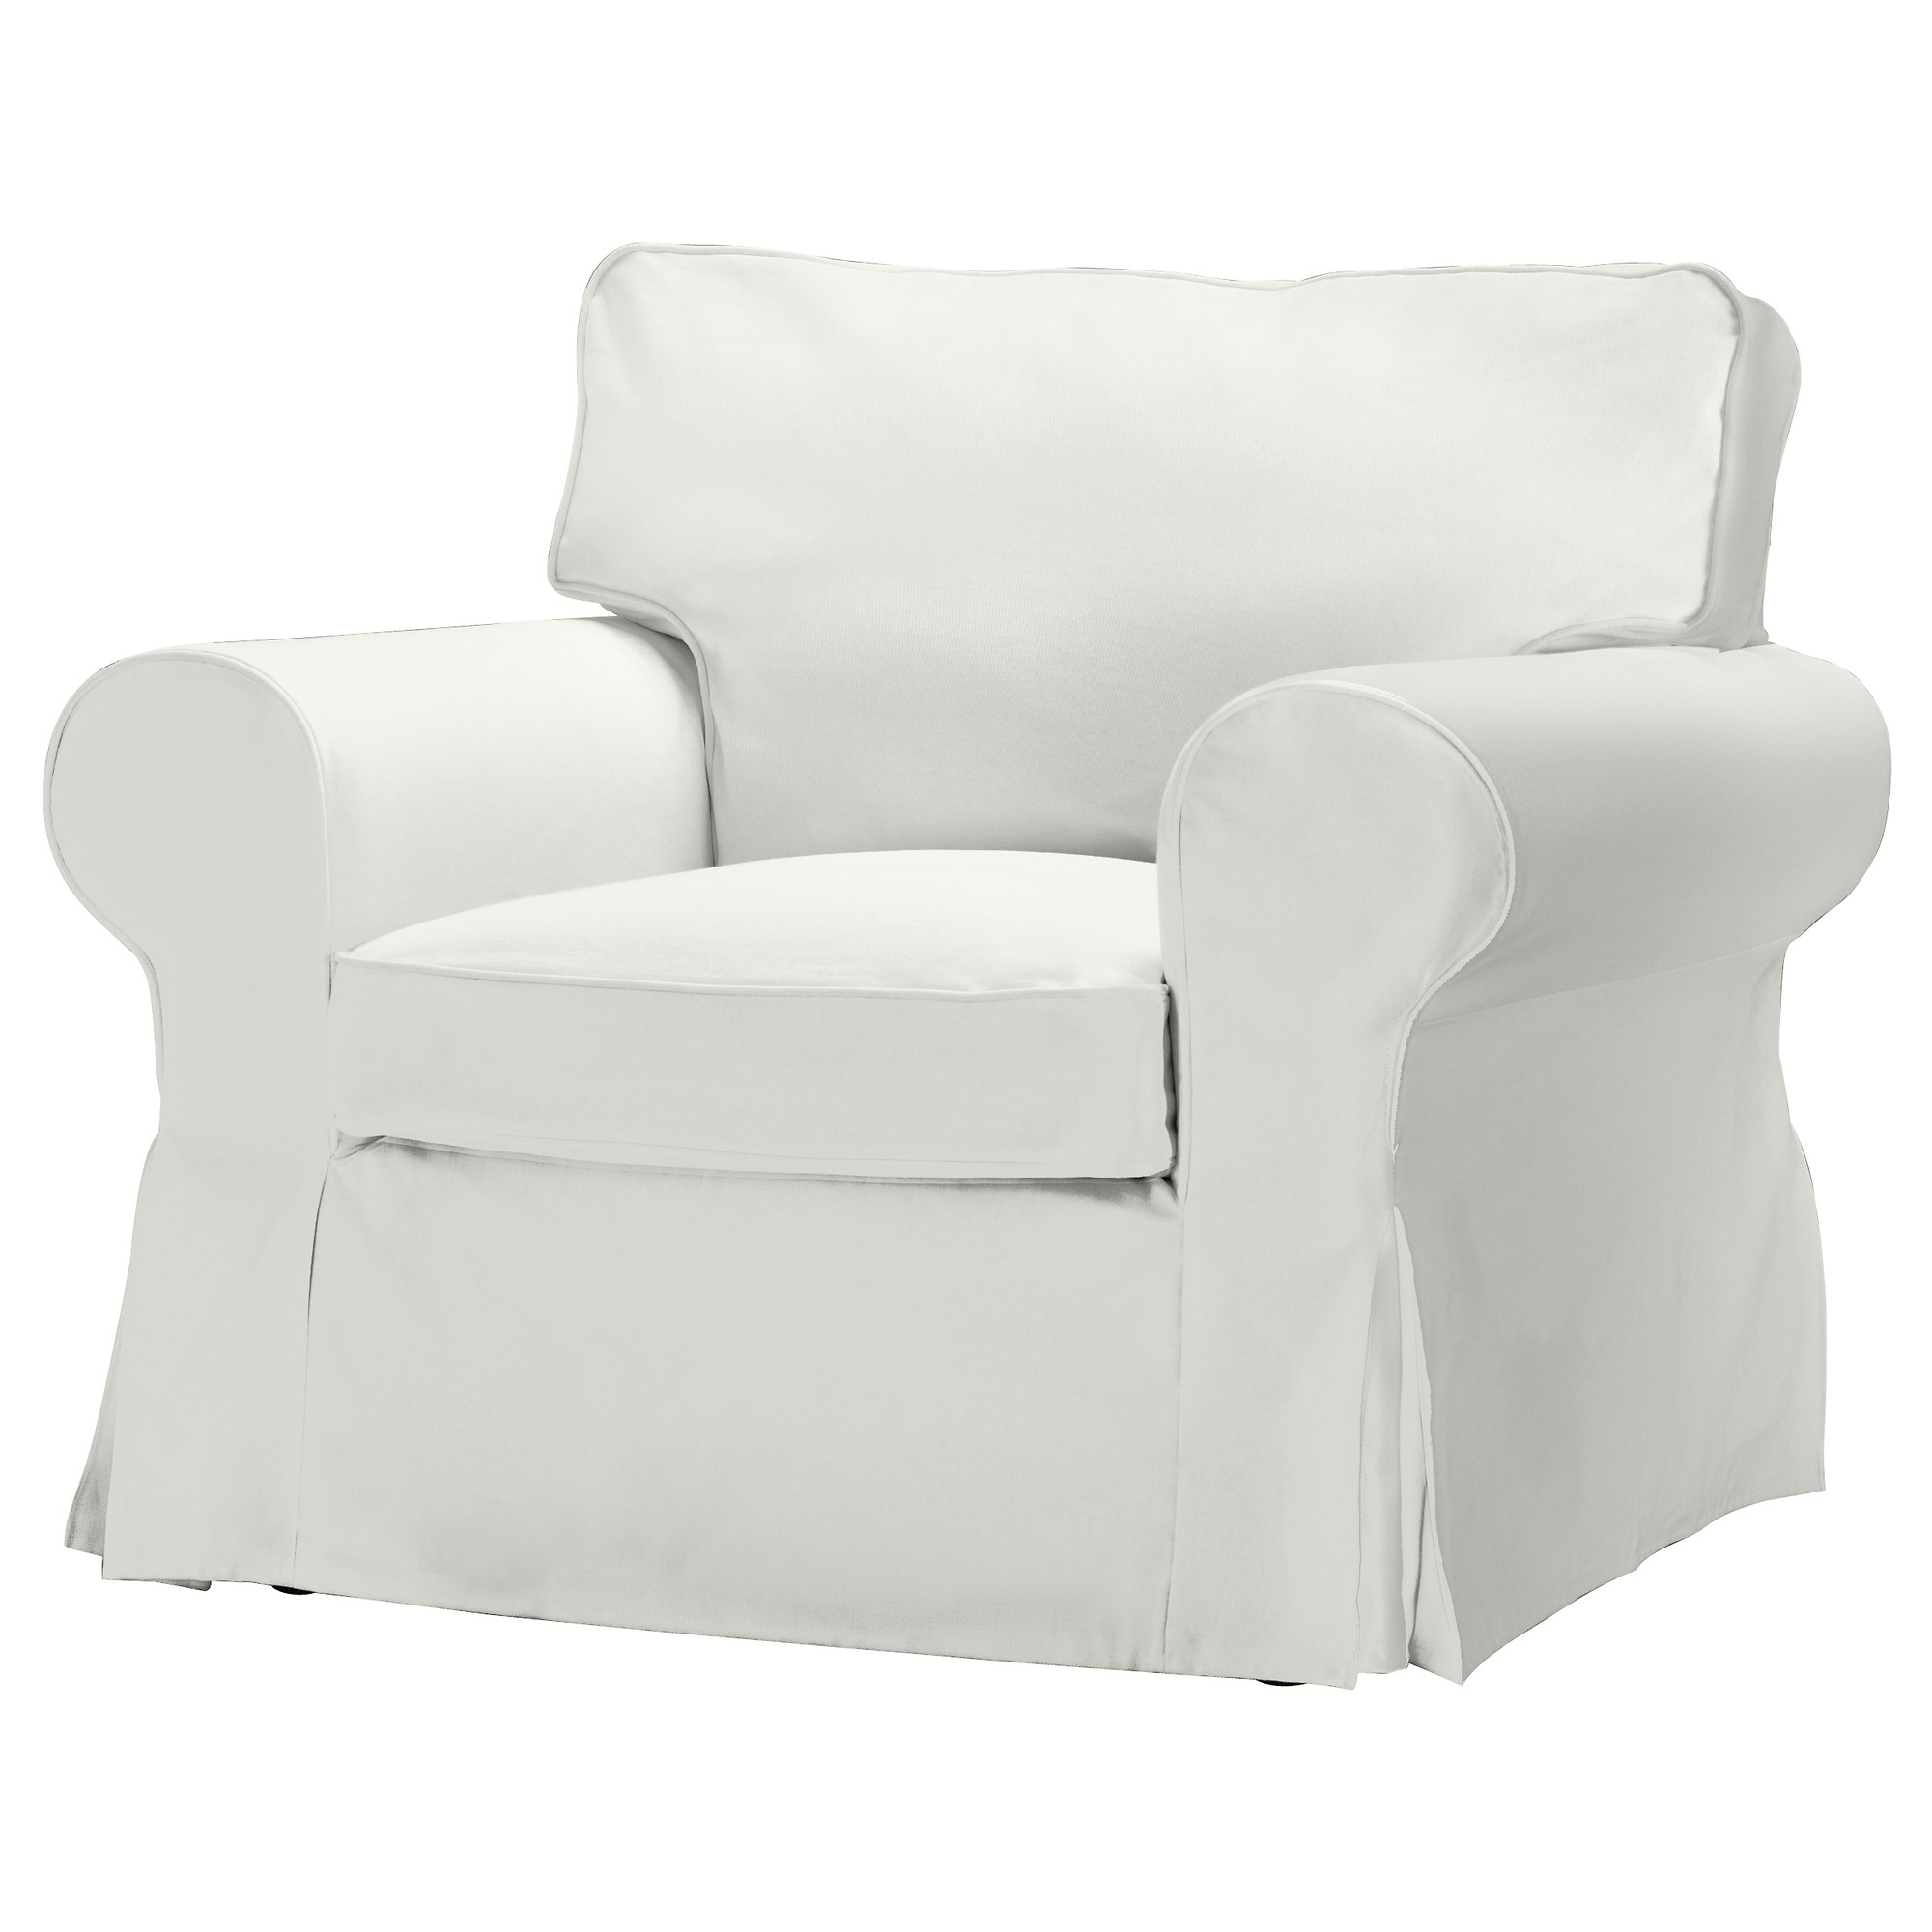 Wonderful EKTORP Armchair Blekinge White   IKEA